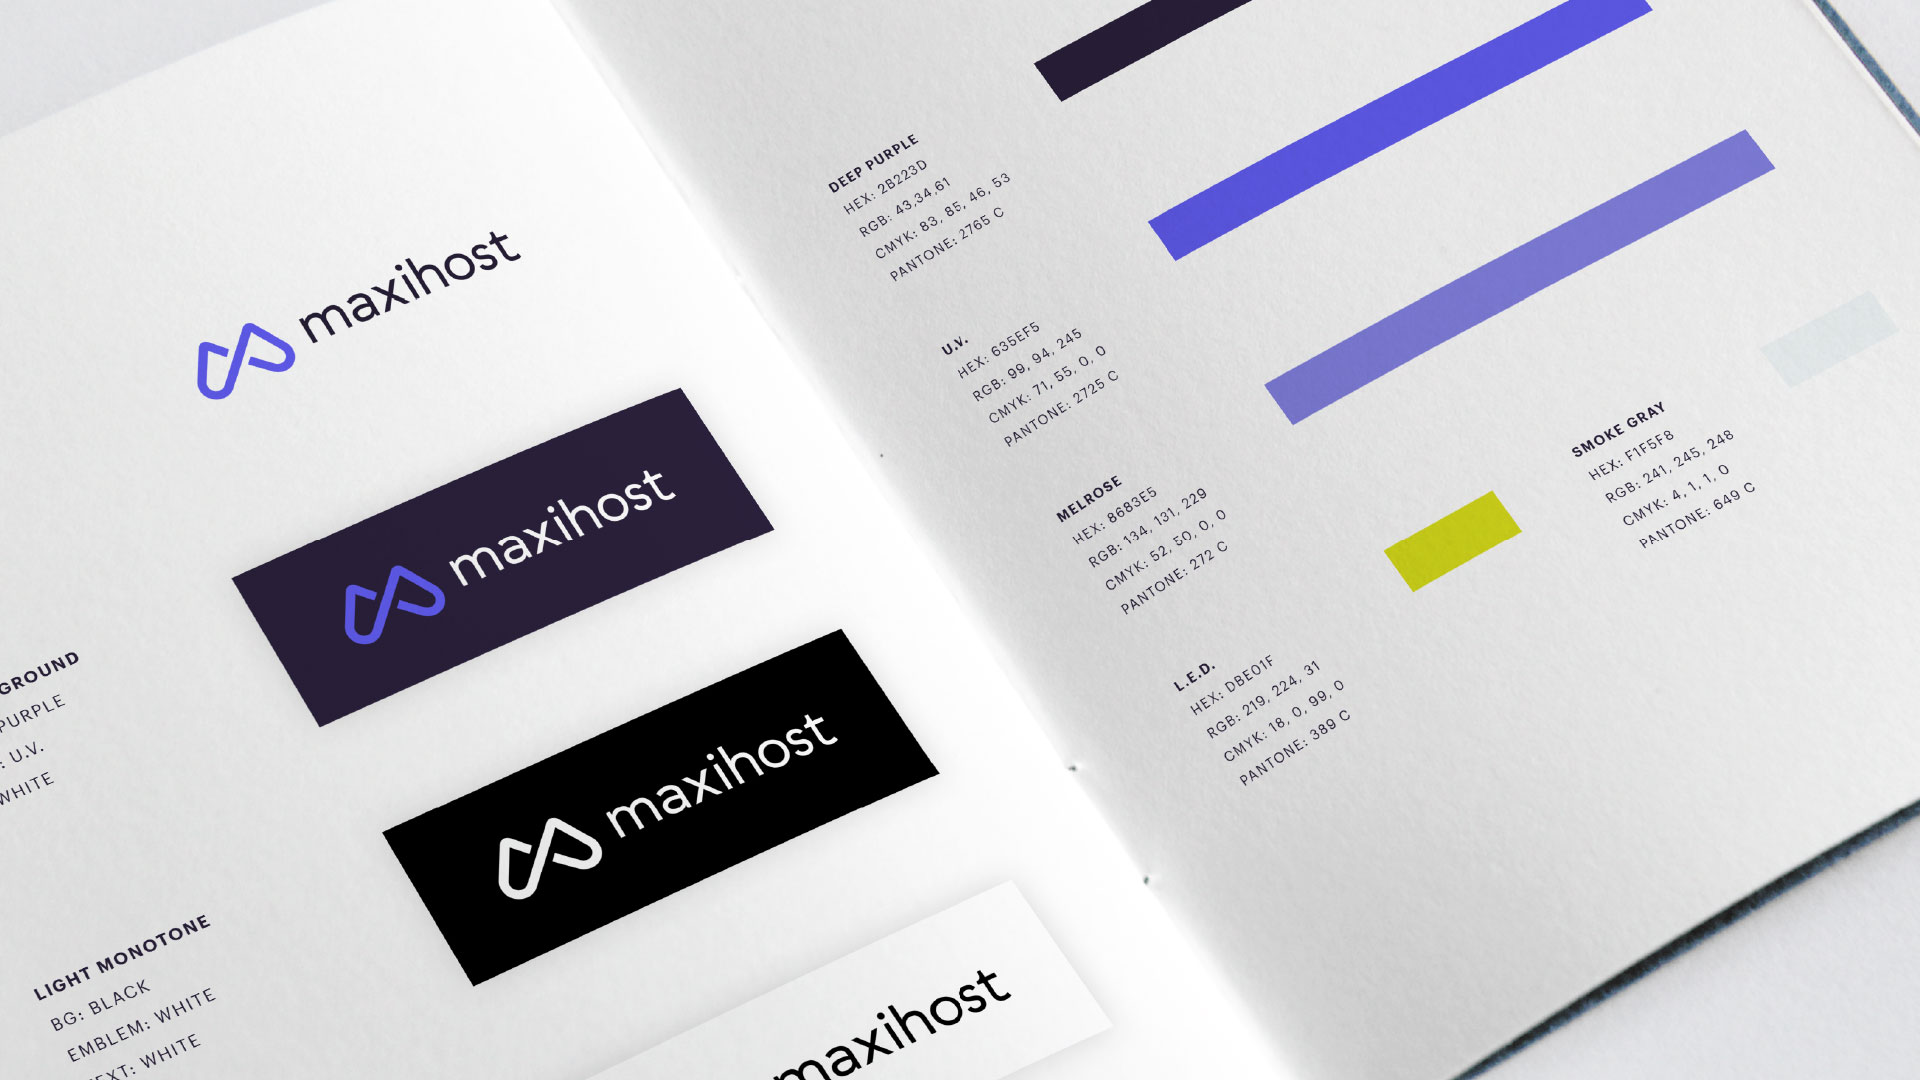 Maxihost branding and graphic design